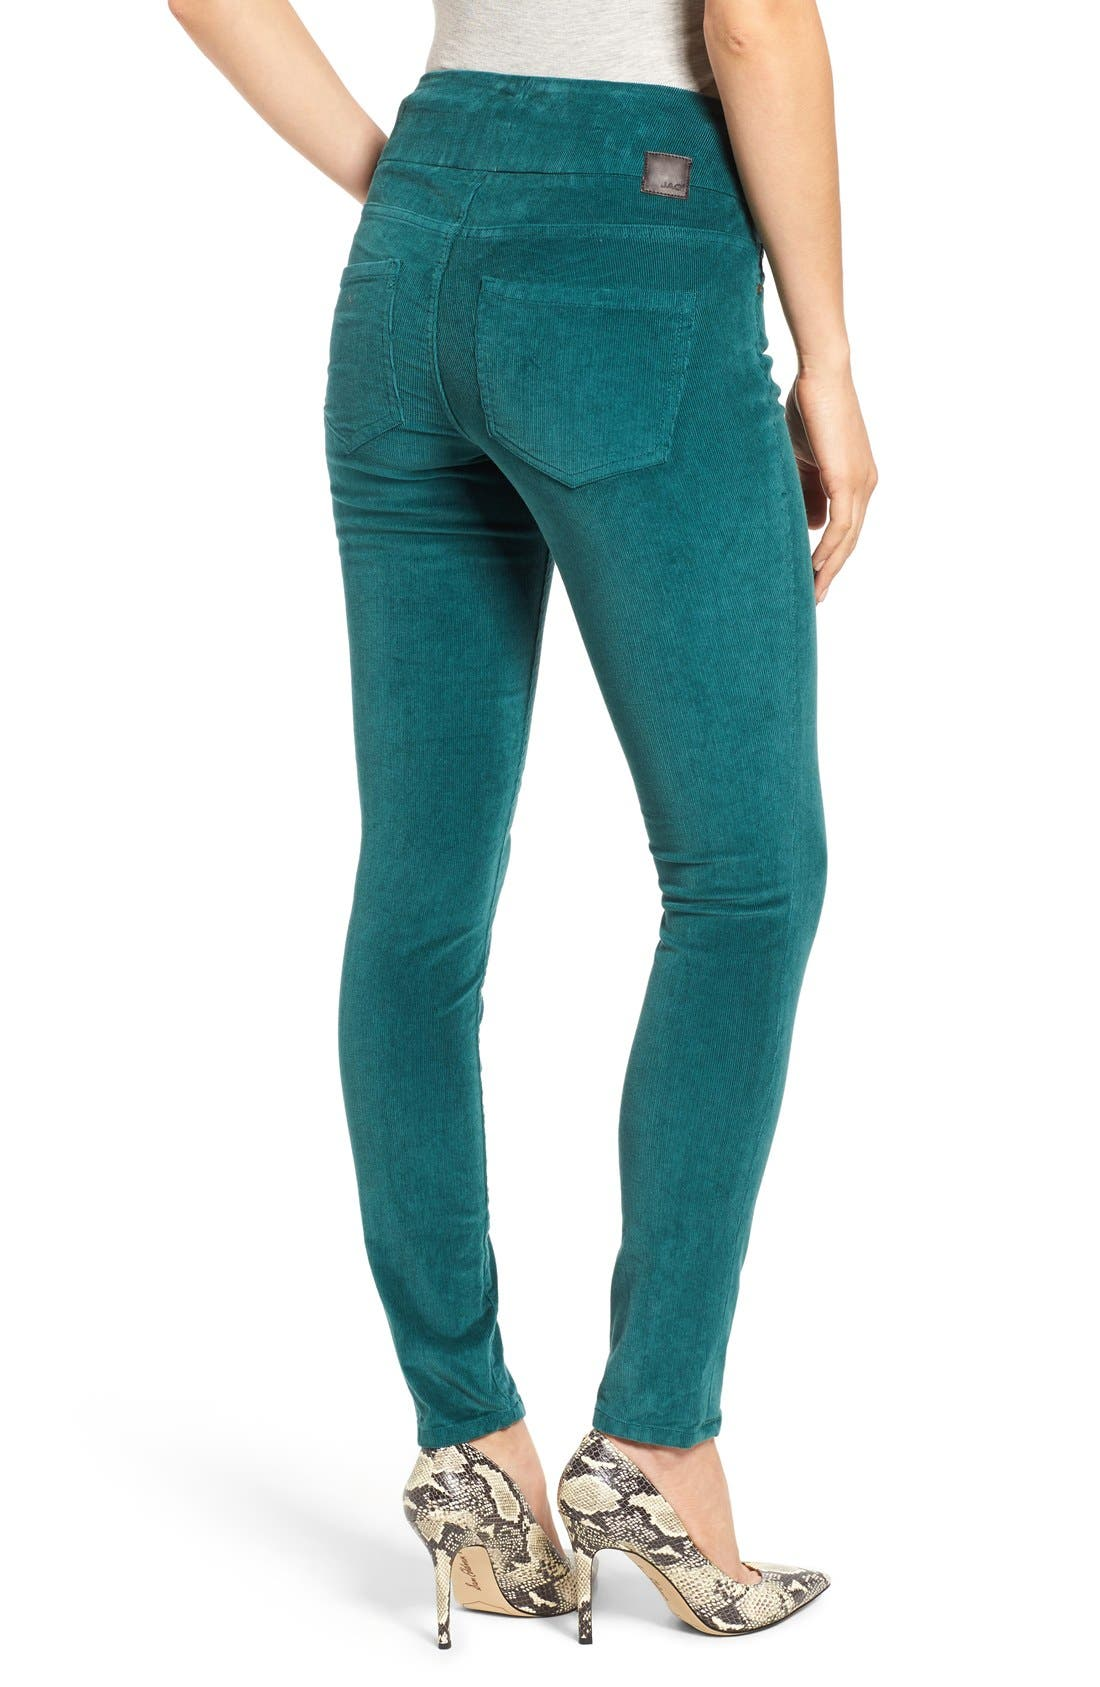 Alternate Image 2  - Jag Jeans Nora Pull-On Stretch Skinny Corduroy Pants (Regular & Petite)